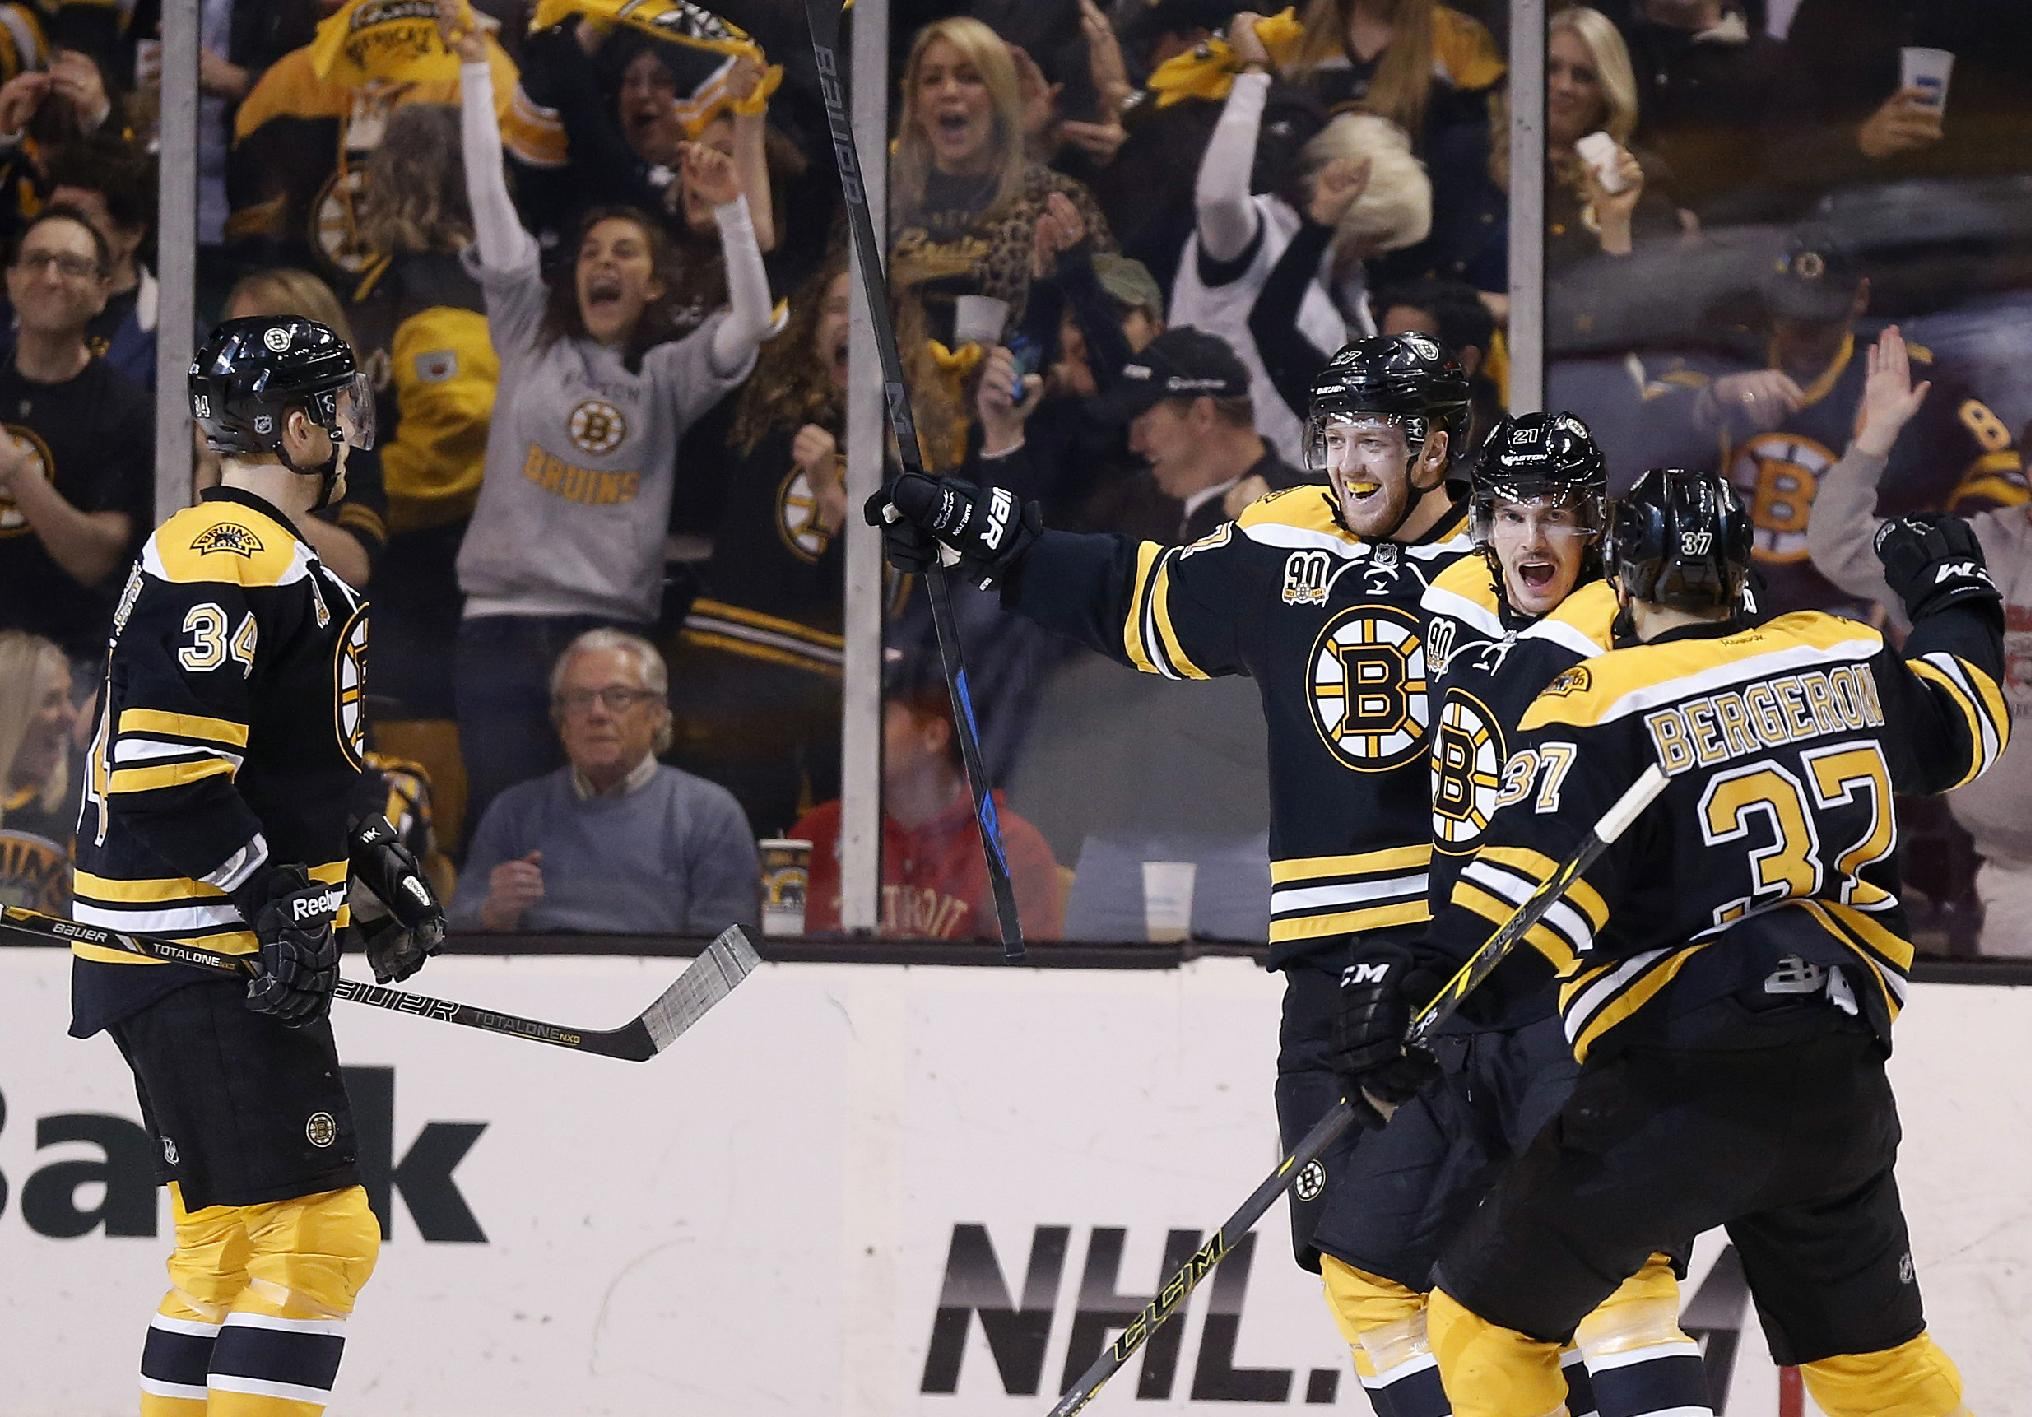 Bruins beat Red Wings 4-2, advance in NHL playoffs